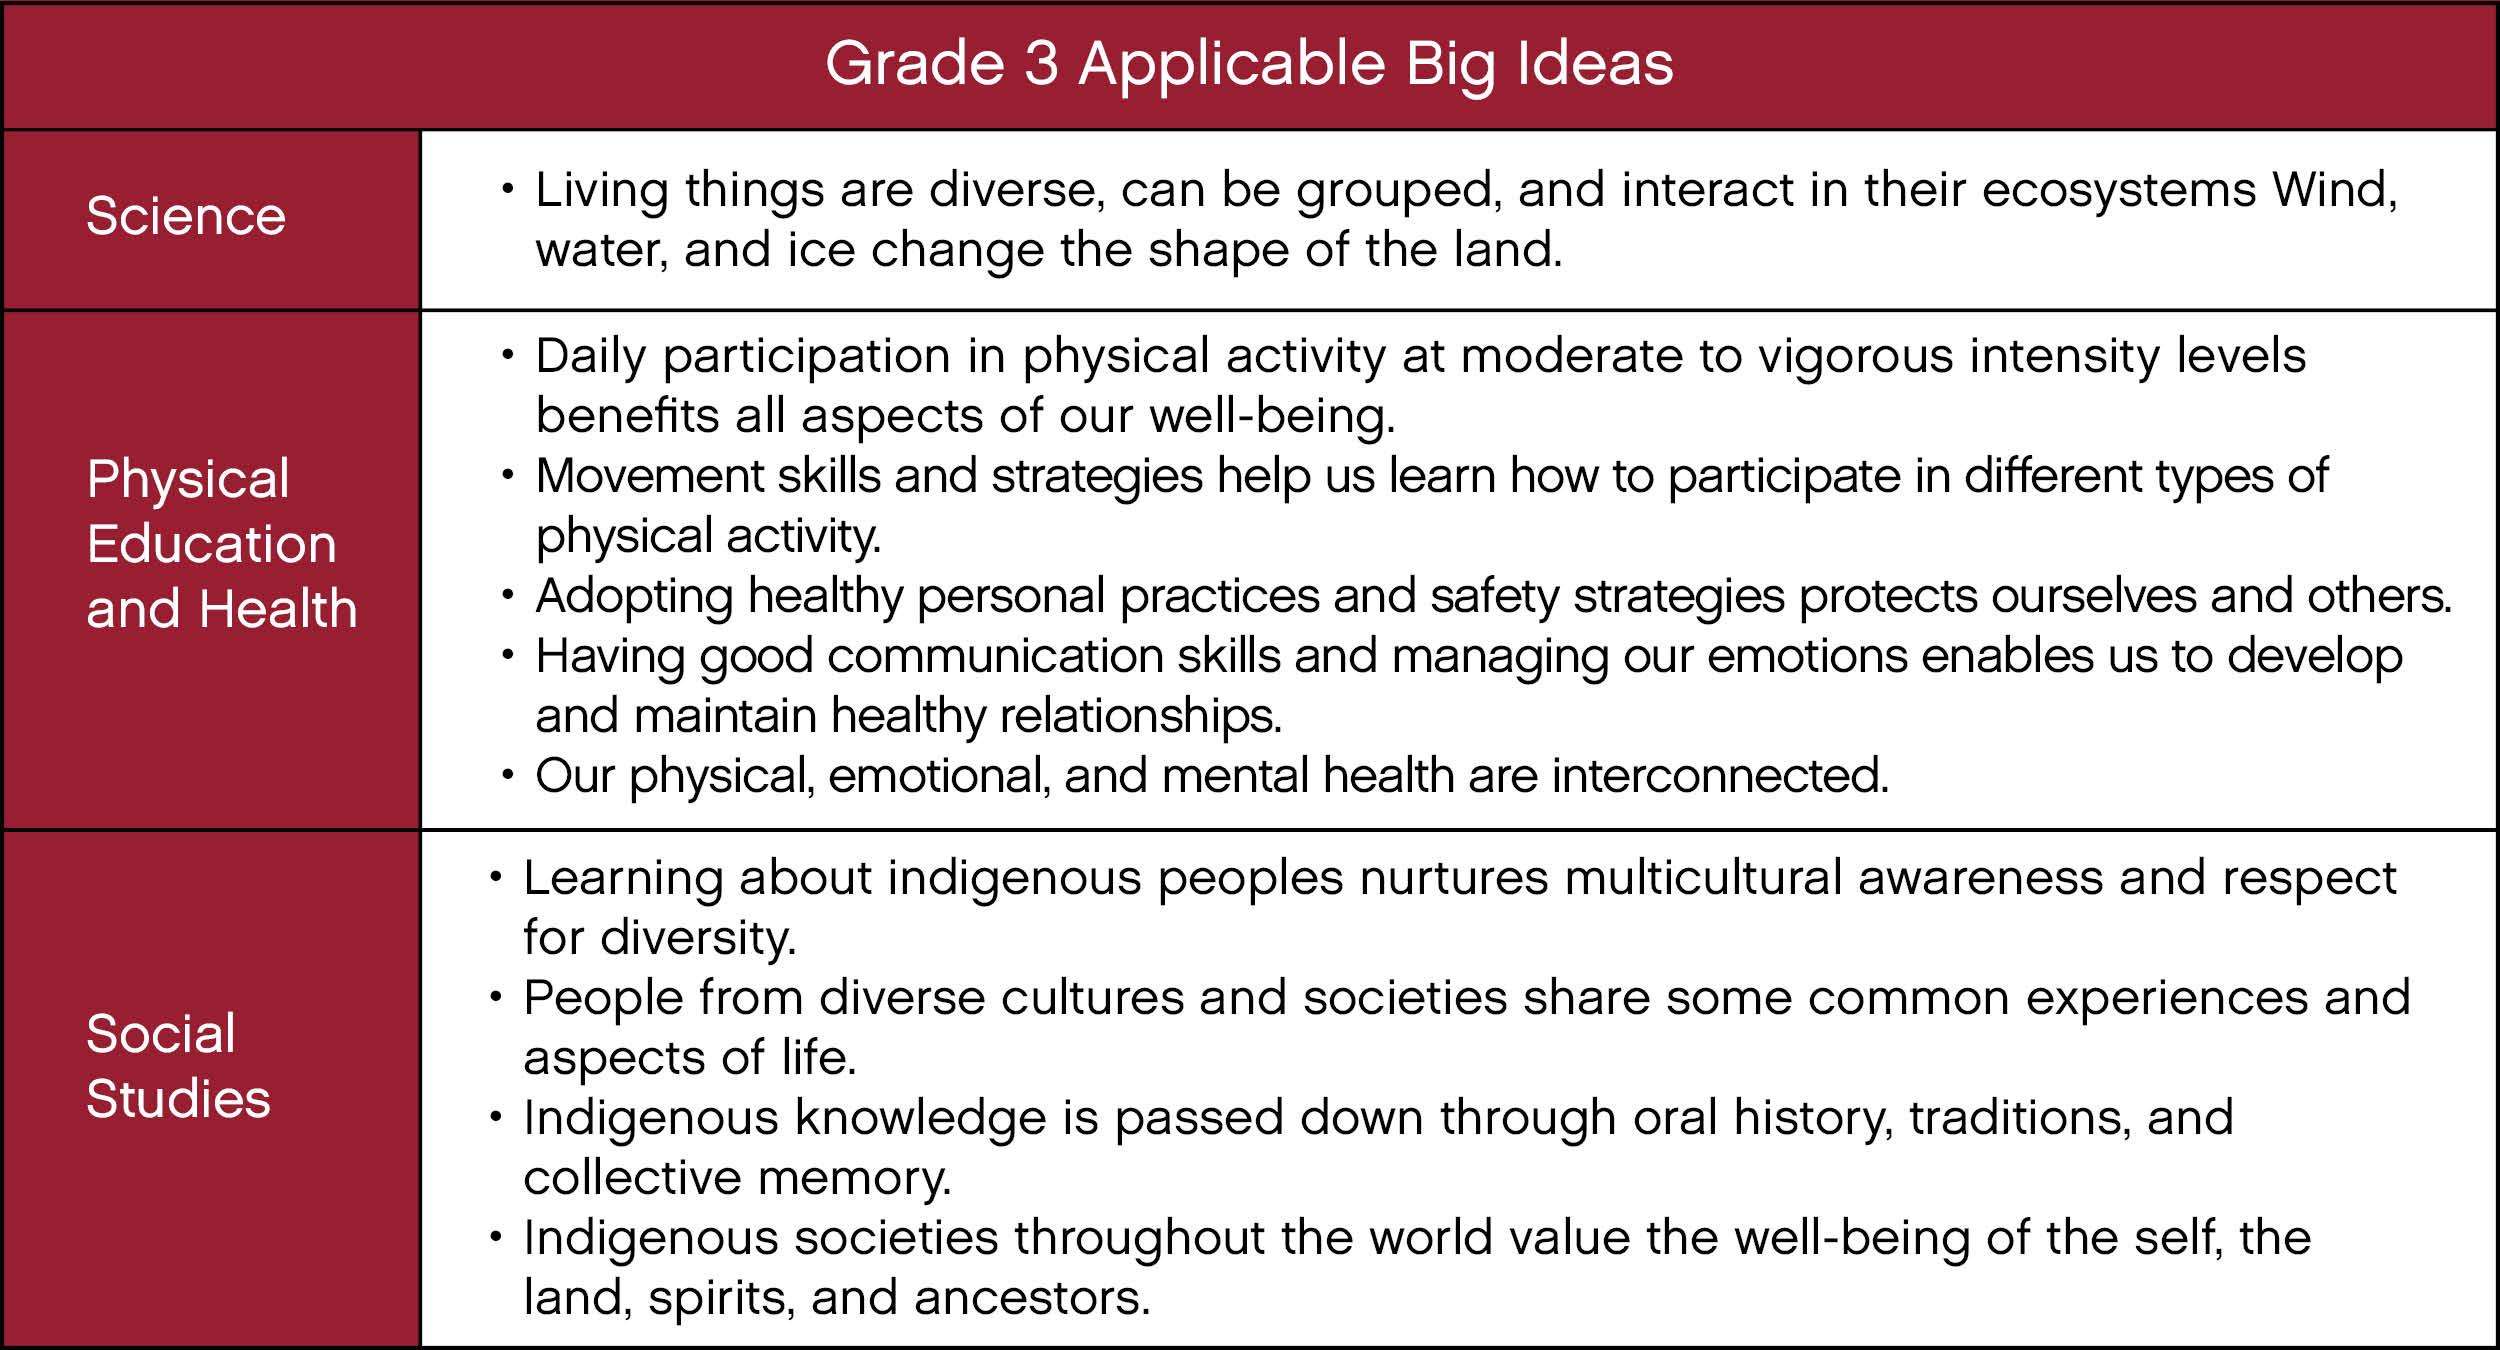 grade 3 big ideas